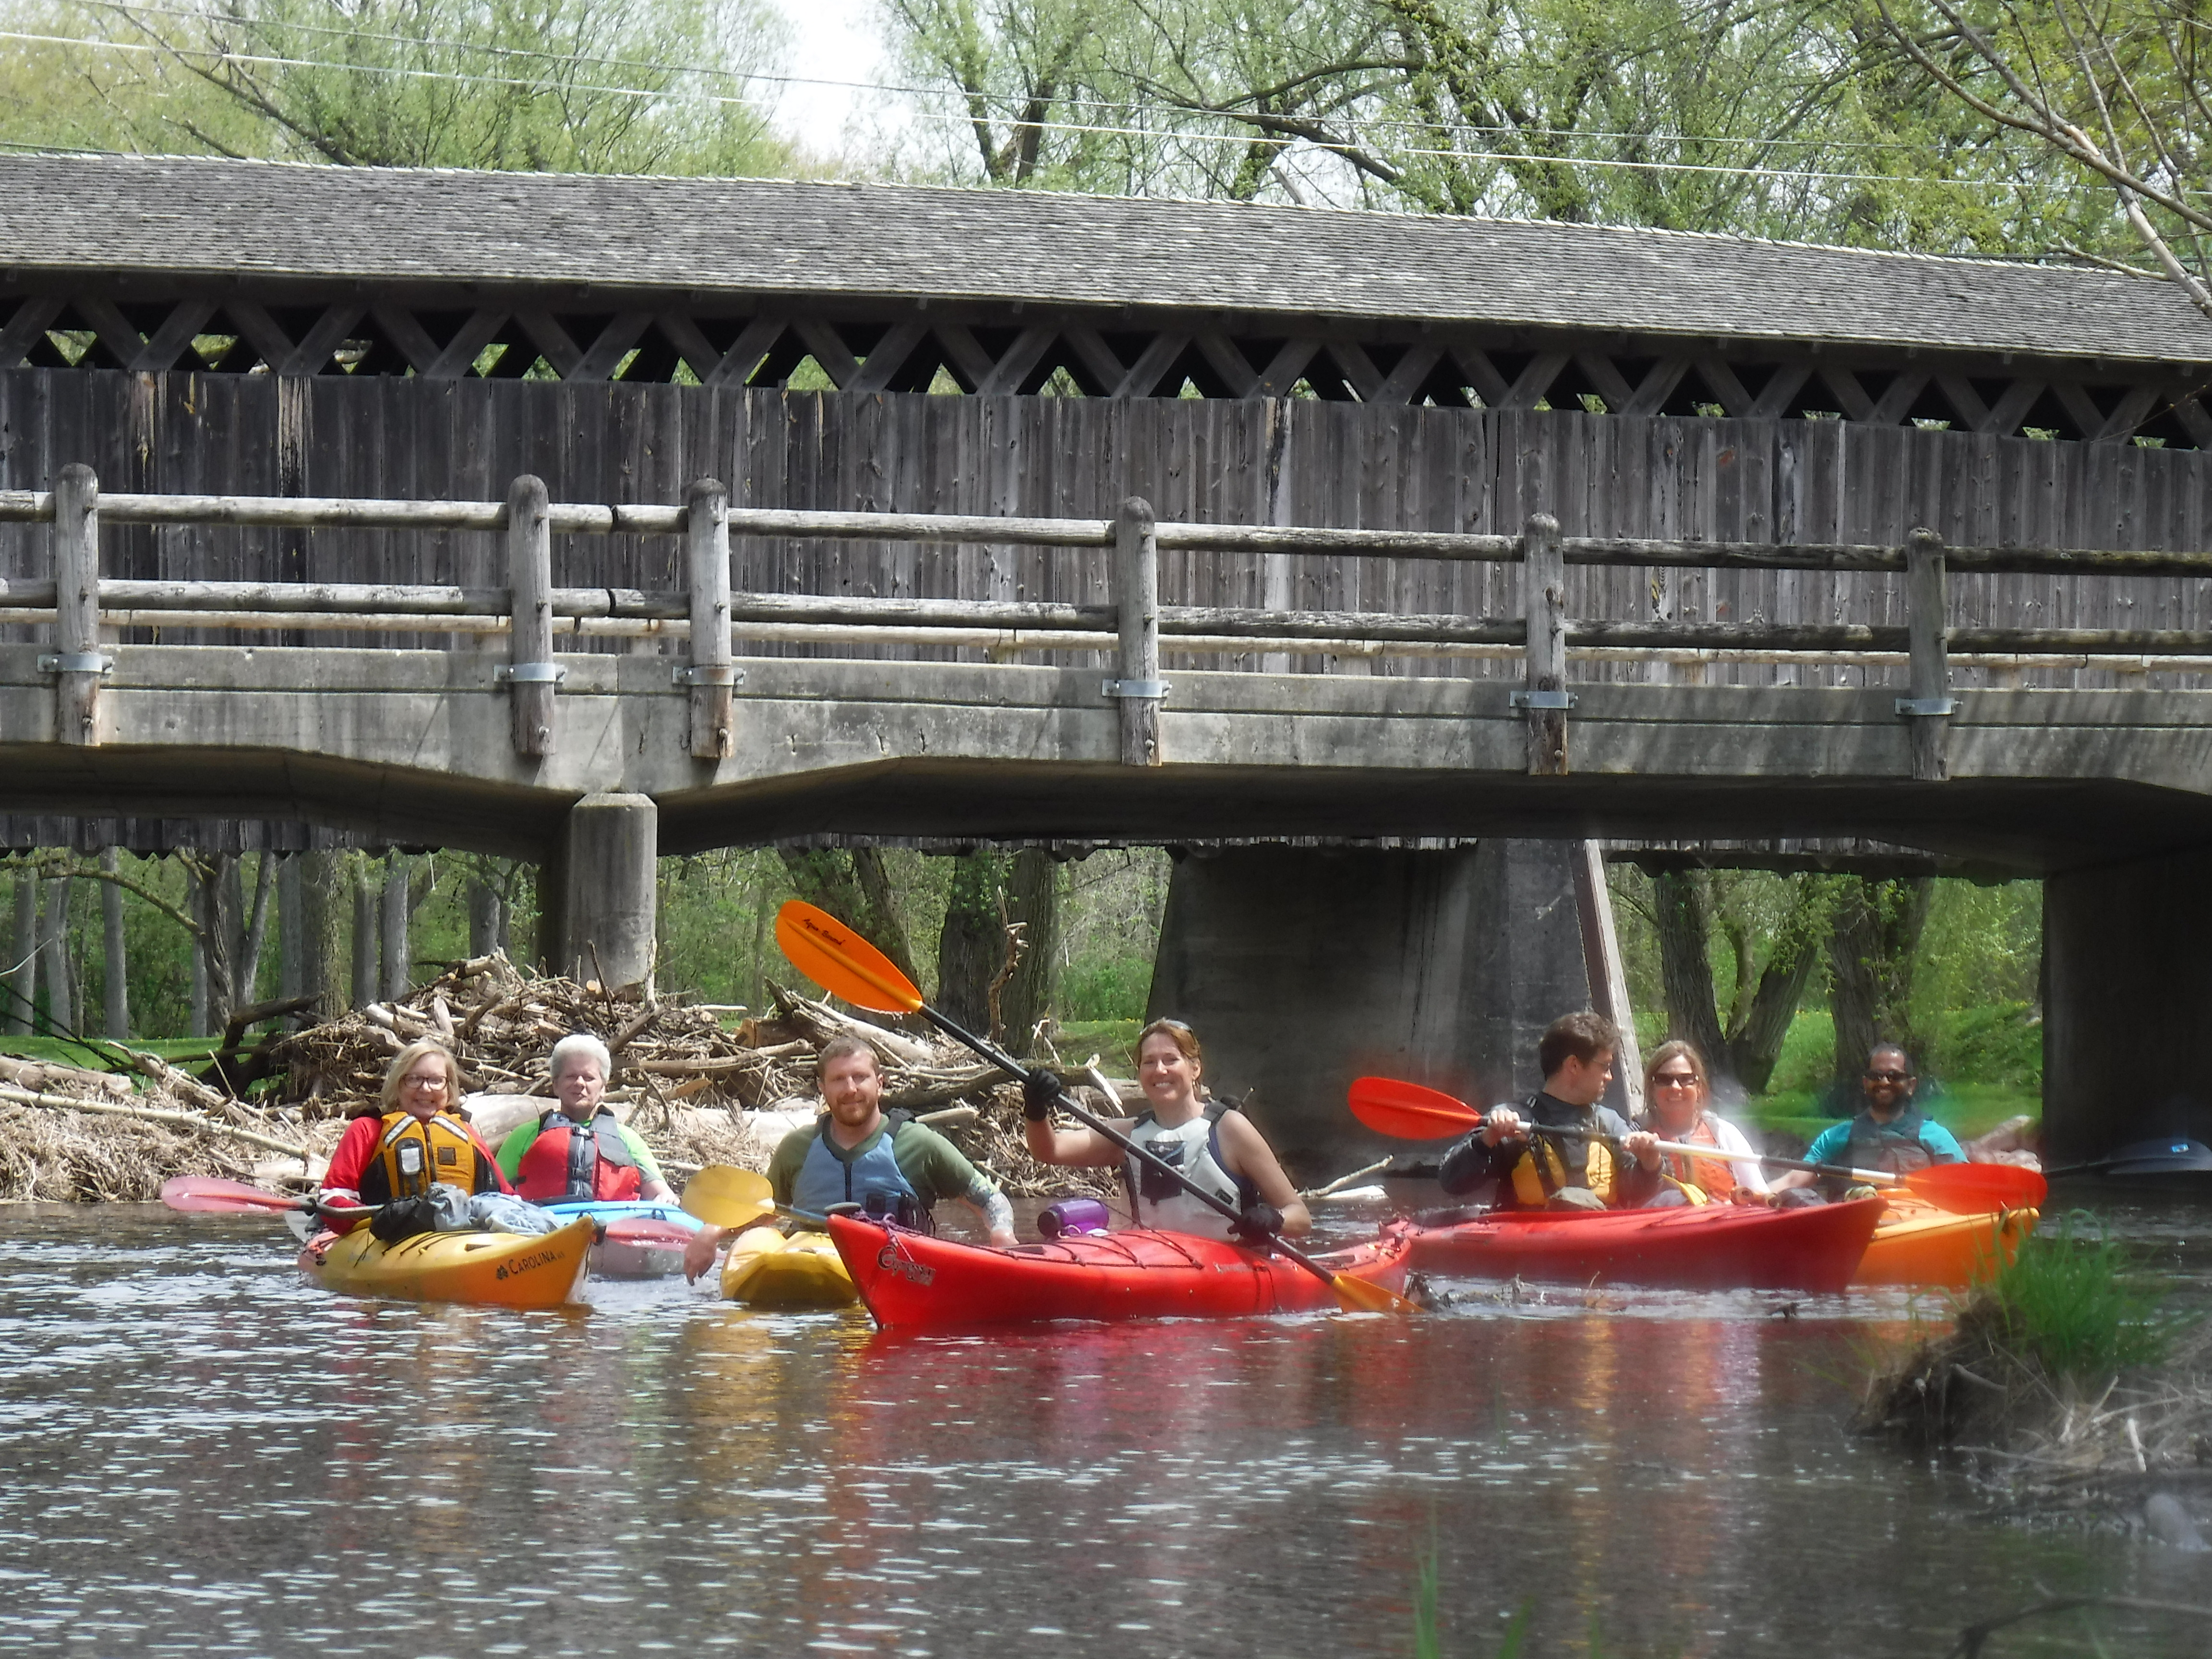 Group holds off a fun paddle trip long enough for a picture alongside the Covered Bridge, Wi